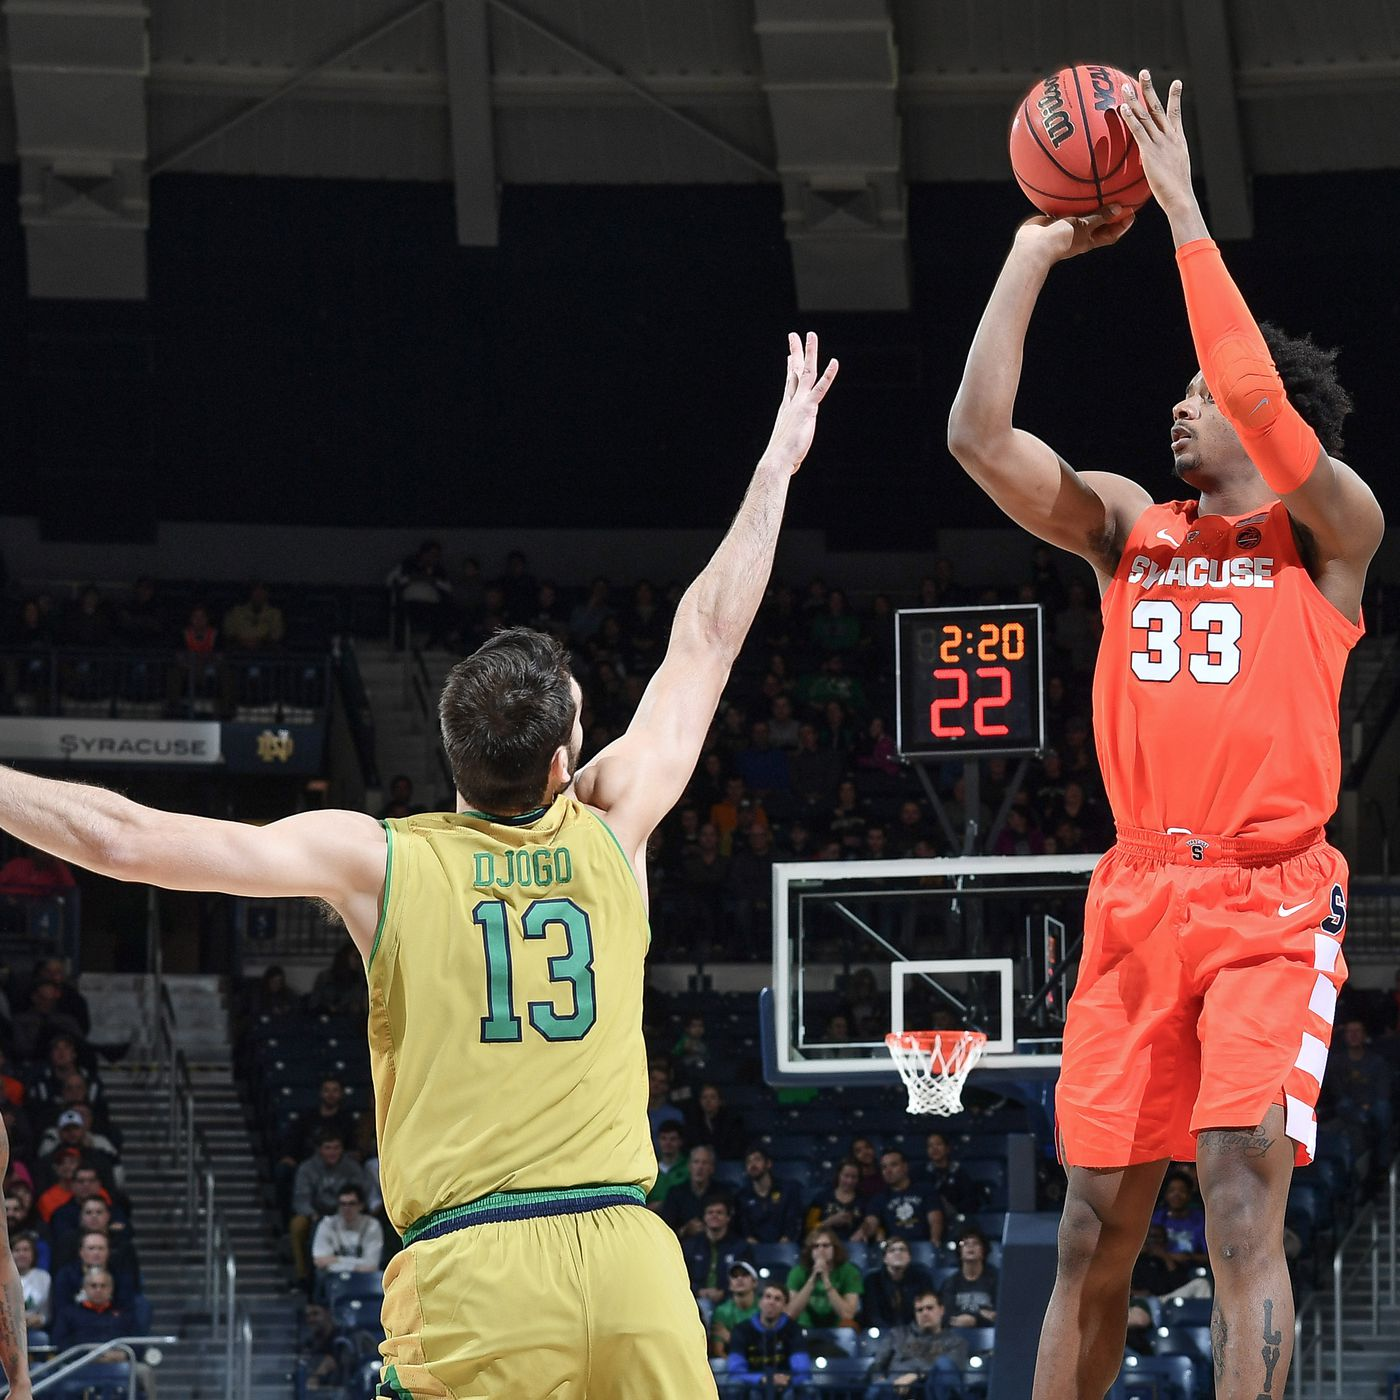 1112a6025cb6 Quick Recap  Notre Dame Men s Hoops Falls to Syracuse 72 to 62 at ...